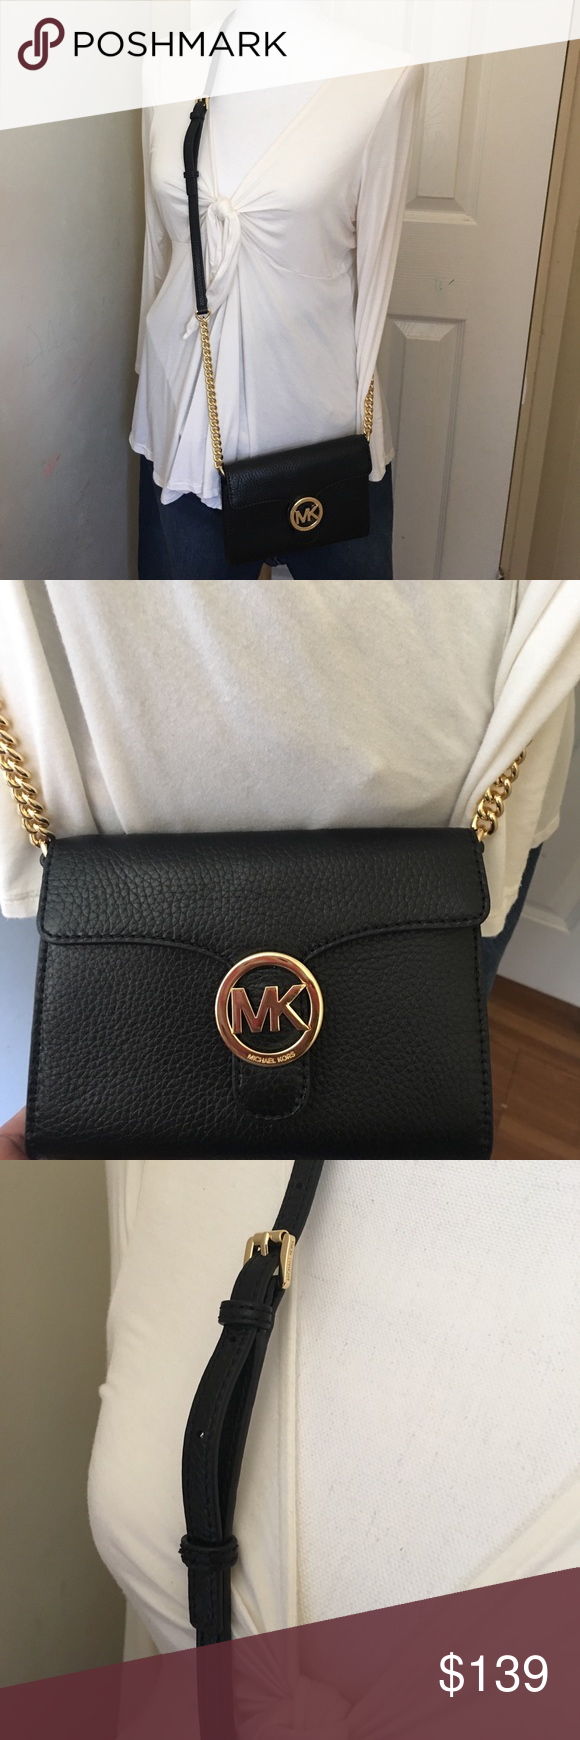 542f288a42a005 Michael kors vanna lg phone crossbody leather bag Brand new crossbody bag.  Black color. 7